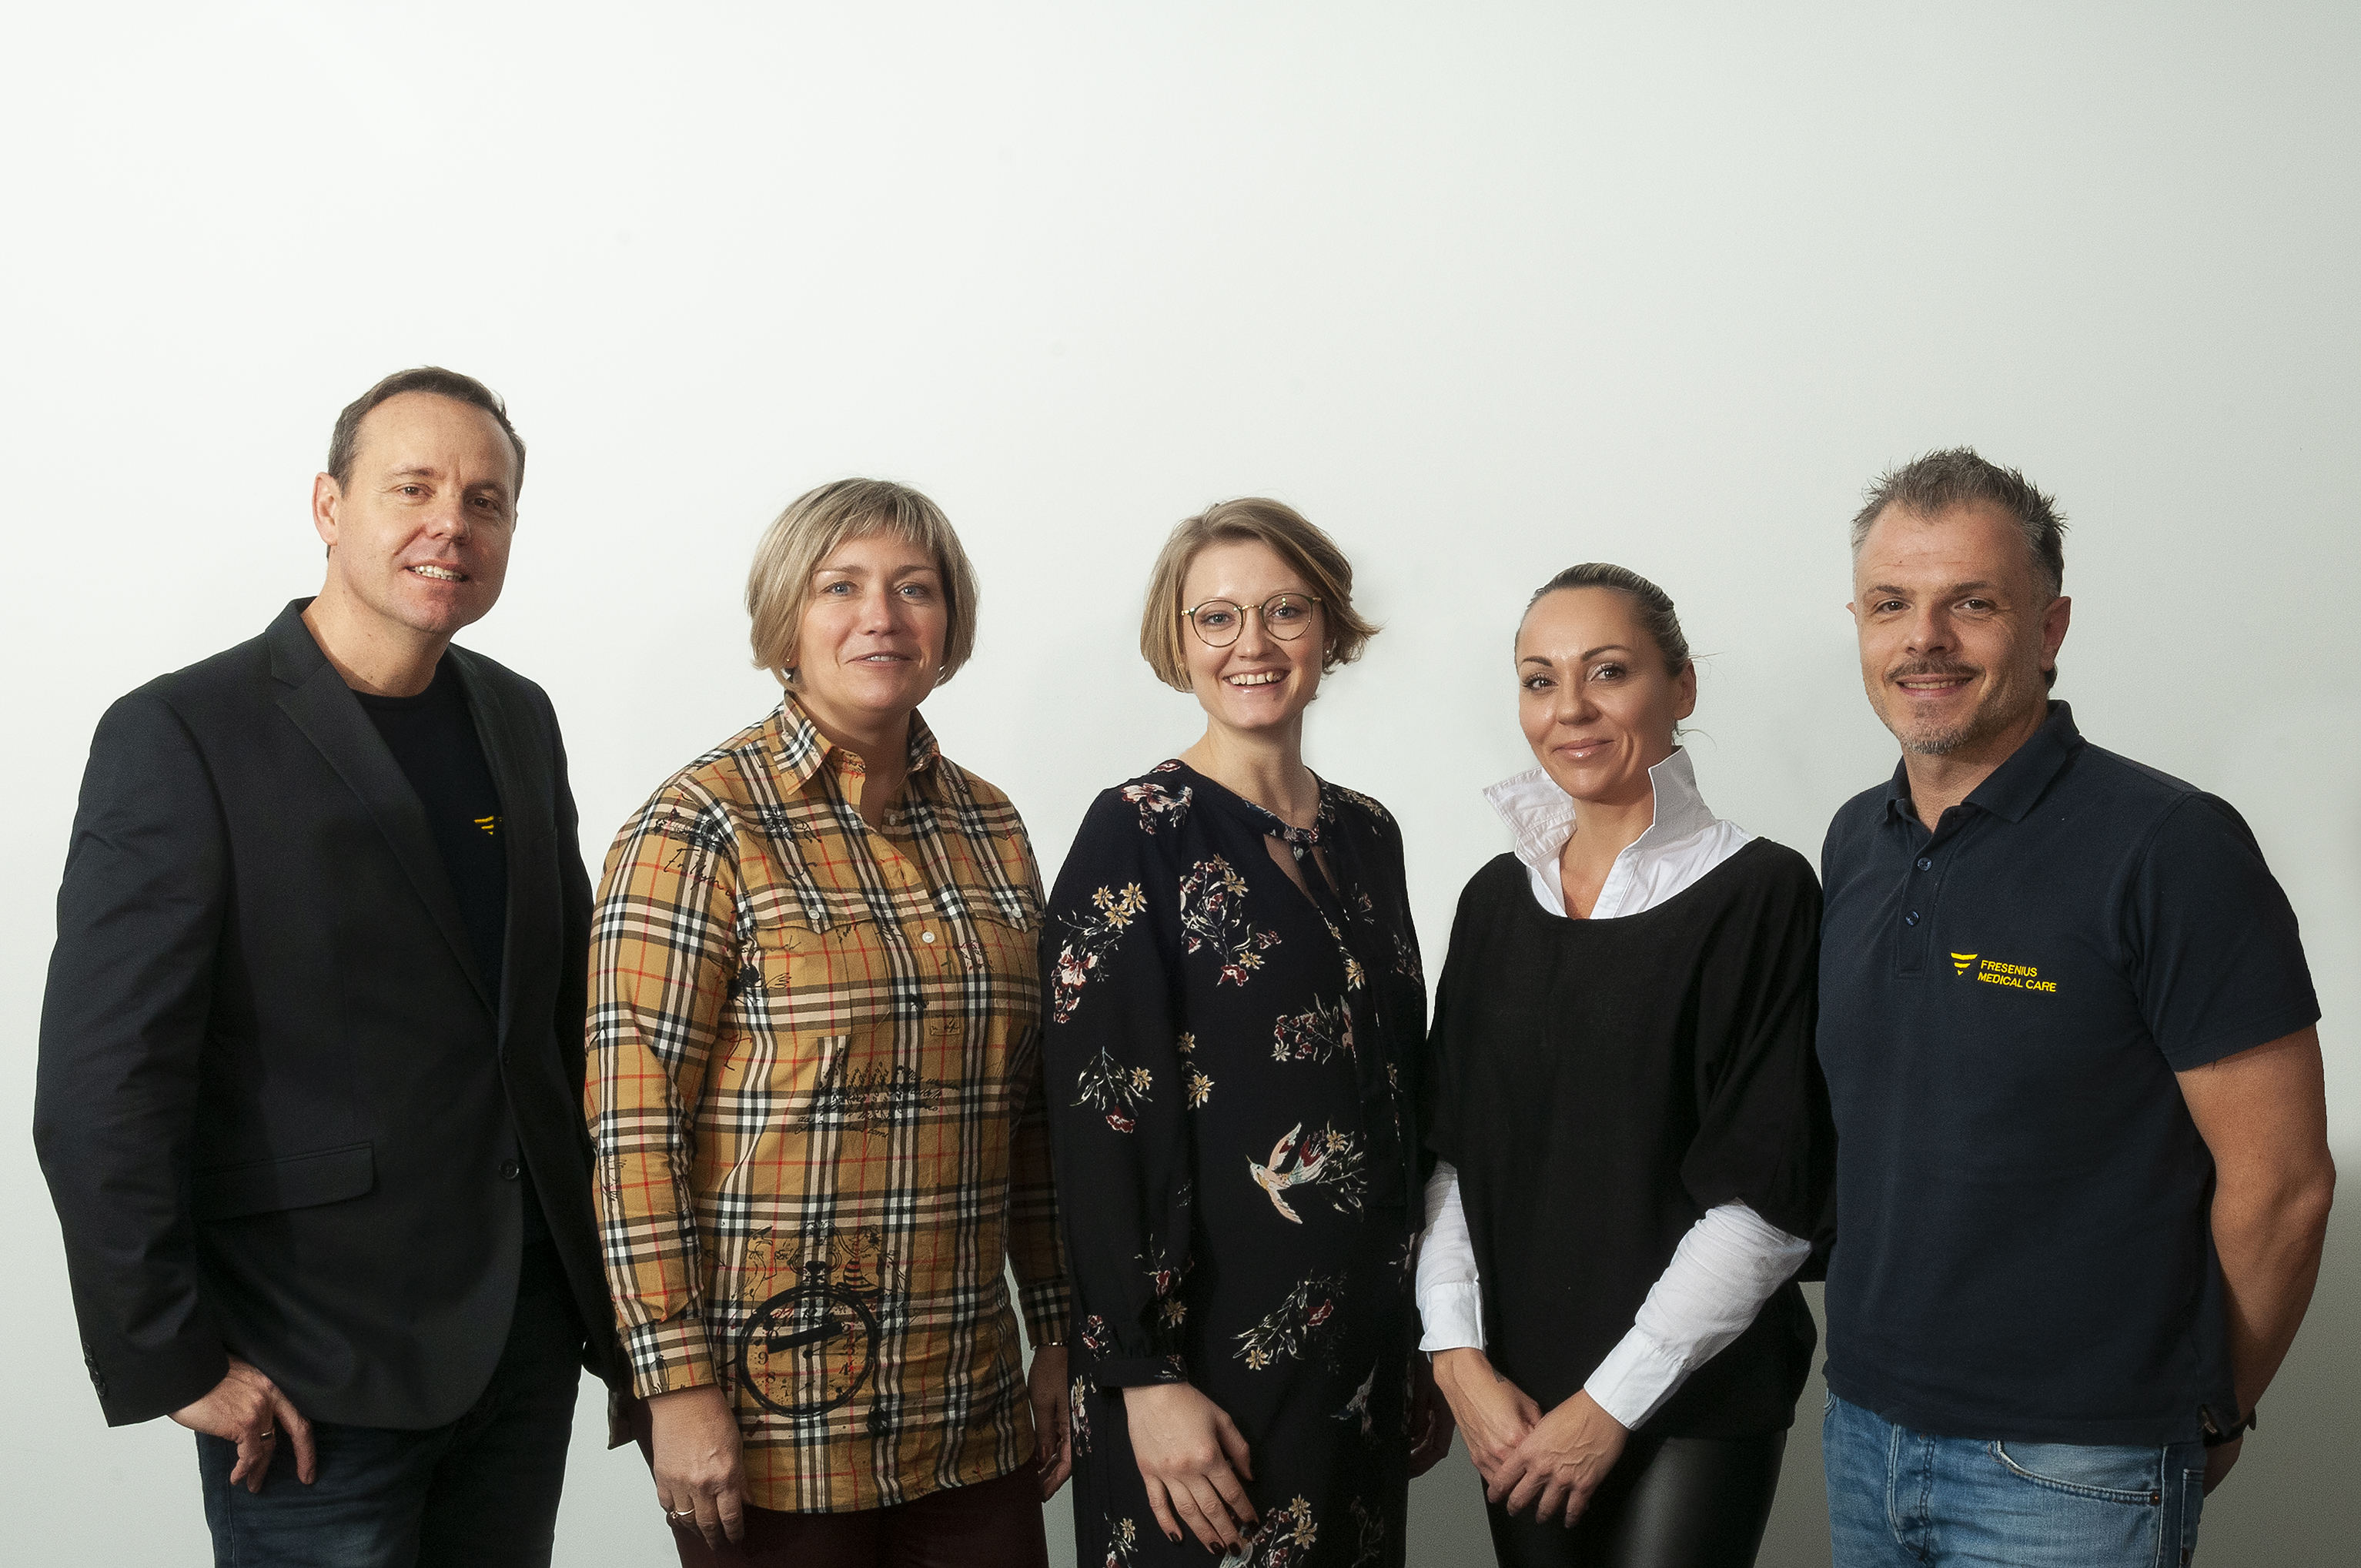 AWB, Anwendungsberater, Schulung, Workshop